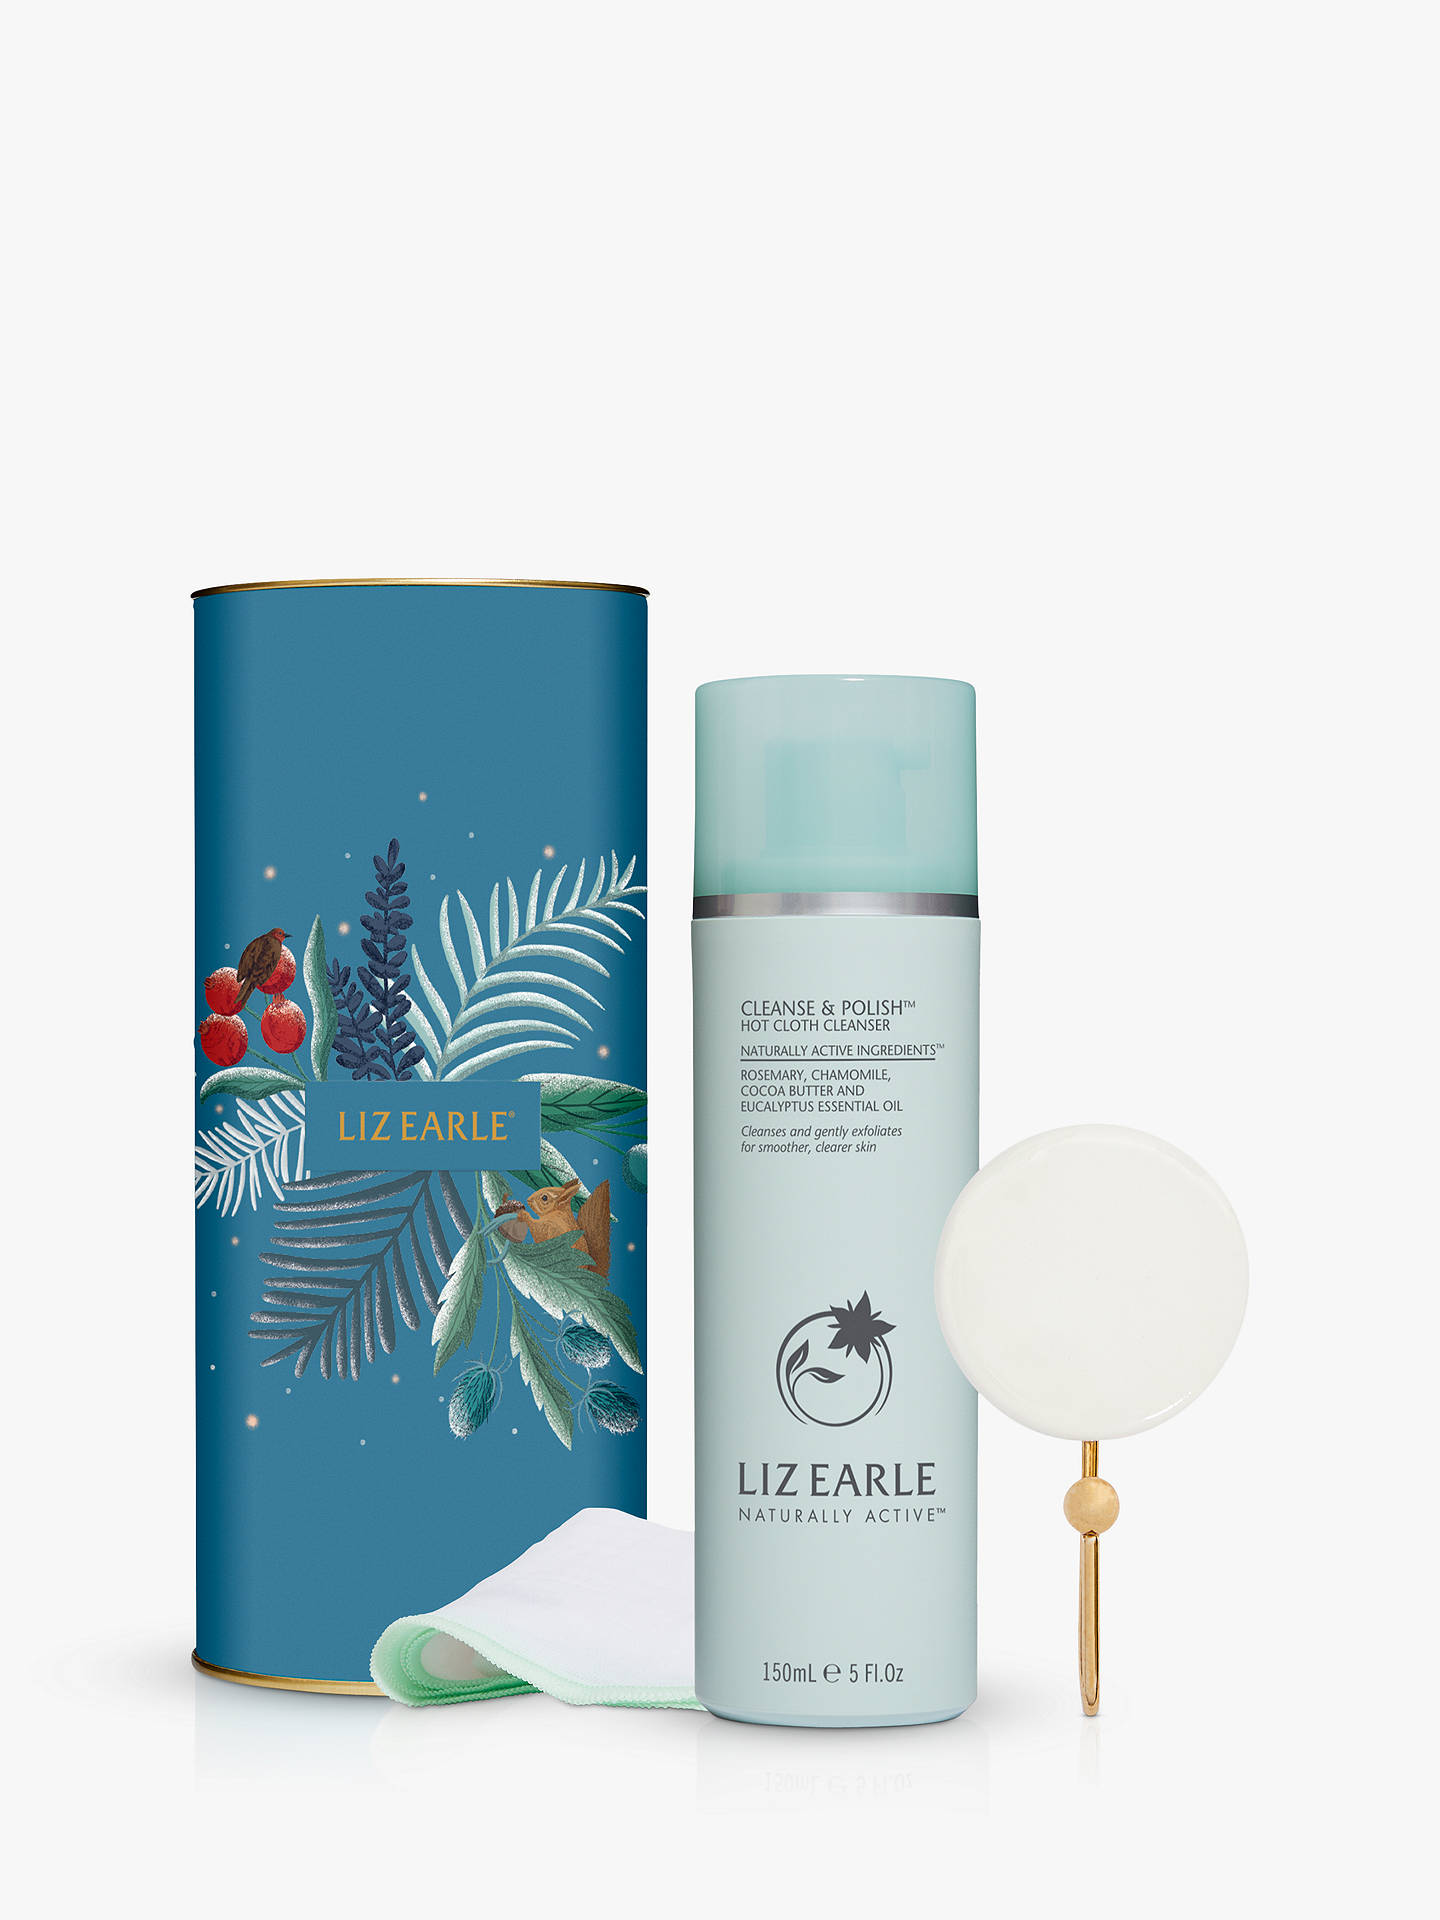 Buy Liz Earle The Liz Earle Classic Skincare Gift Set Online at johnlewis.com